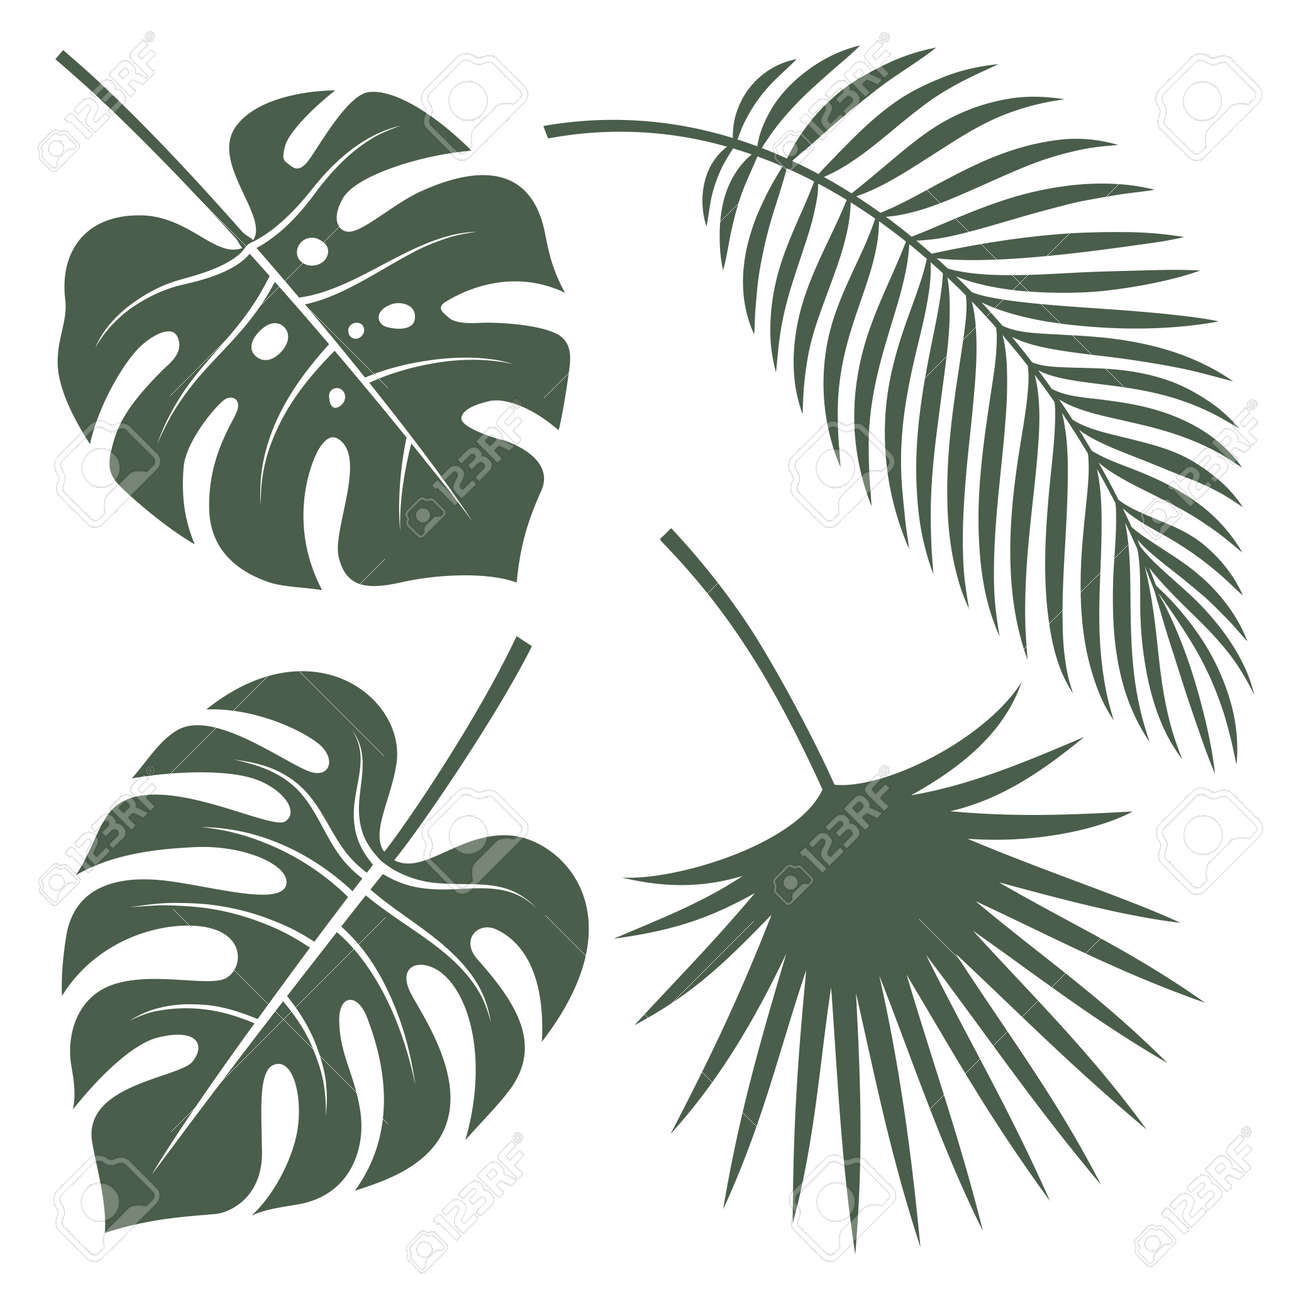 Silhouettes vector of tropical leaves. Monstera, coconut palm and fan palm. - 96943231